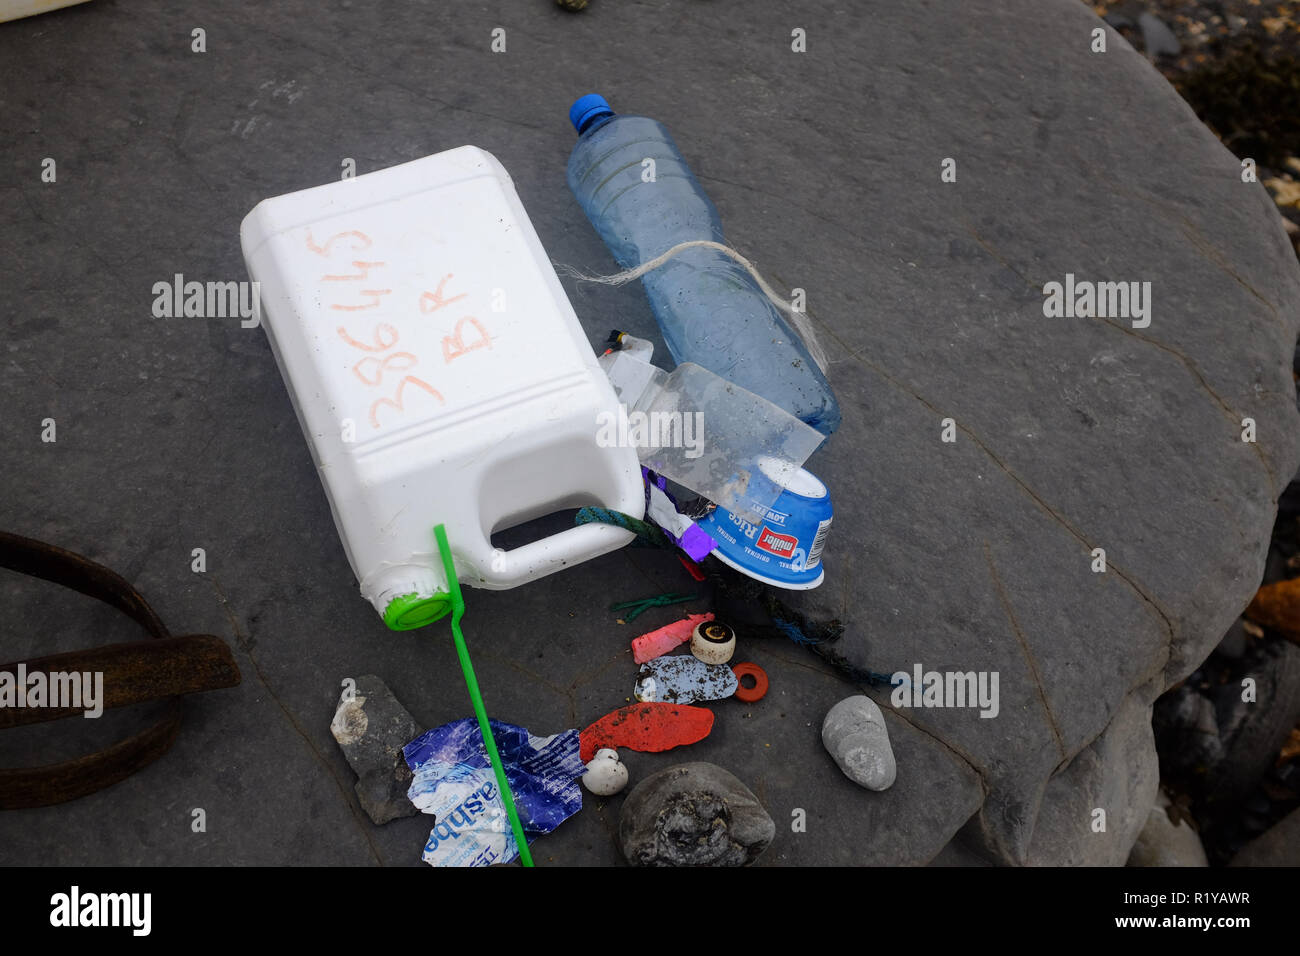 Lyme Regis UK 15th November 2018 - Plastic rubbish and ancient fossils found on the beach between Lyme Regis and Charmouth  on a grey misty afternoon along the Jurassic coast in Dorset Credit: Simon Dack/Alamy Live News - Stock Image